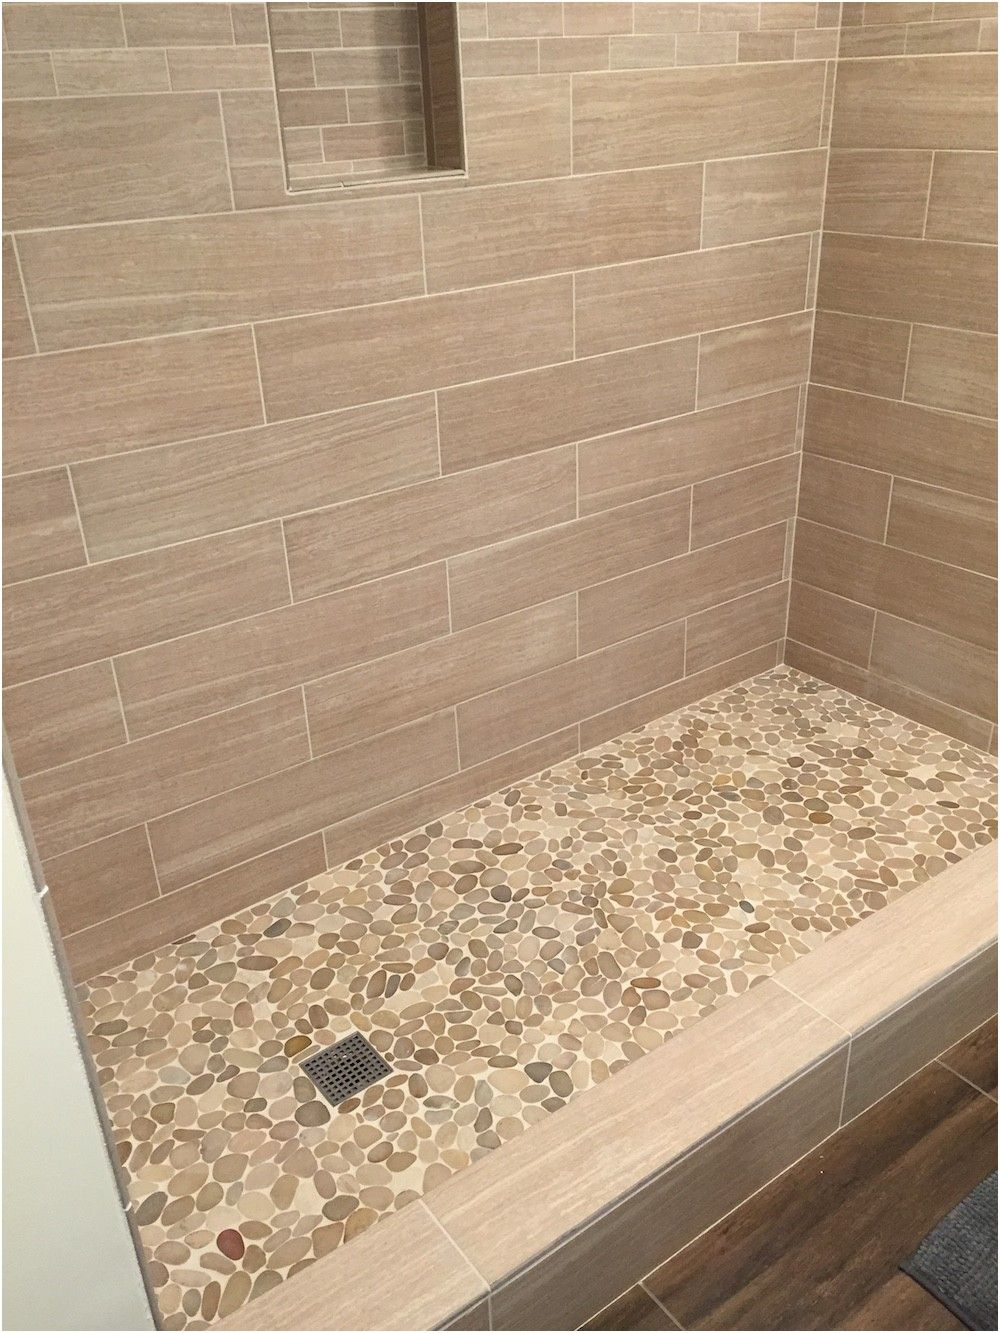 awesome Awesome Cost to Tile Bathroom Shower | mifd283.com ...